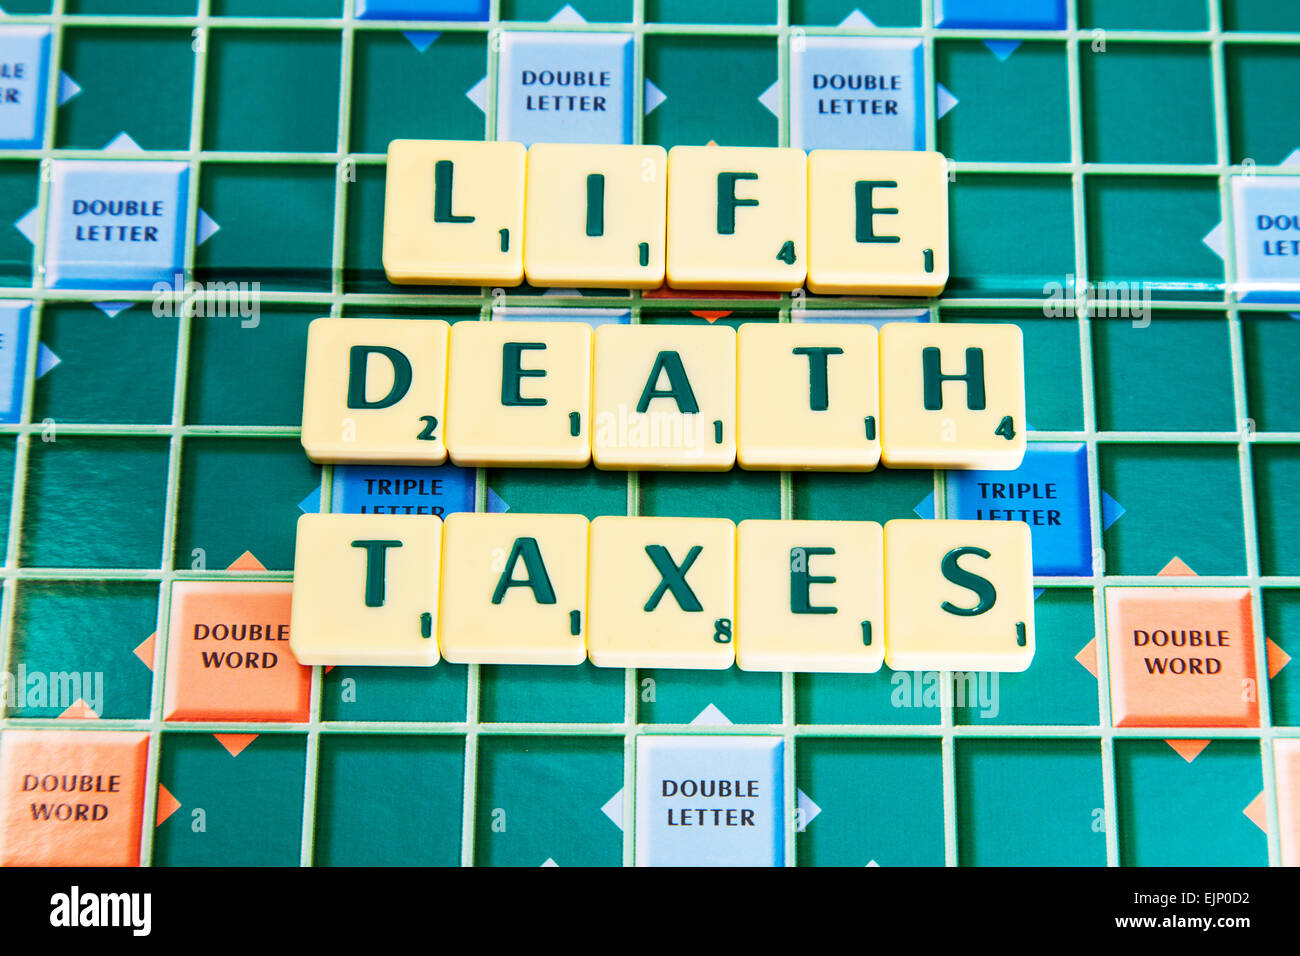 life death taxes only 3 things to be sure of in words using scrabble tiles to illustrate spelling spell out - Stock Image